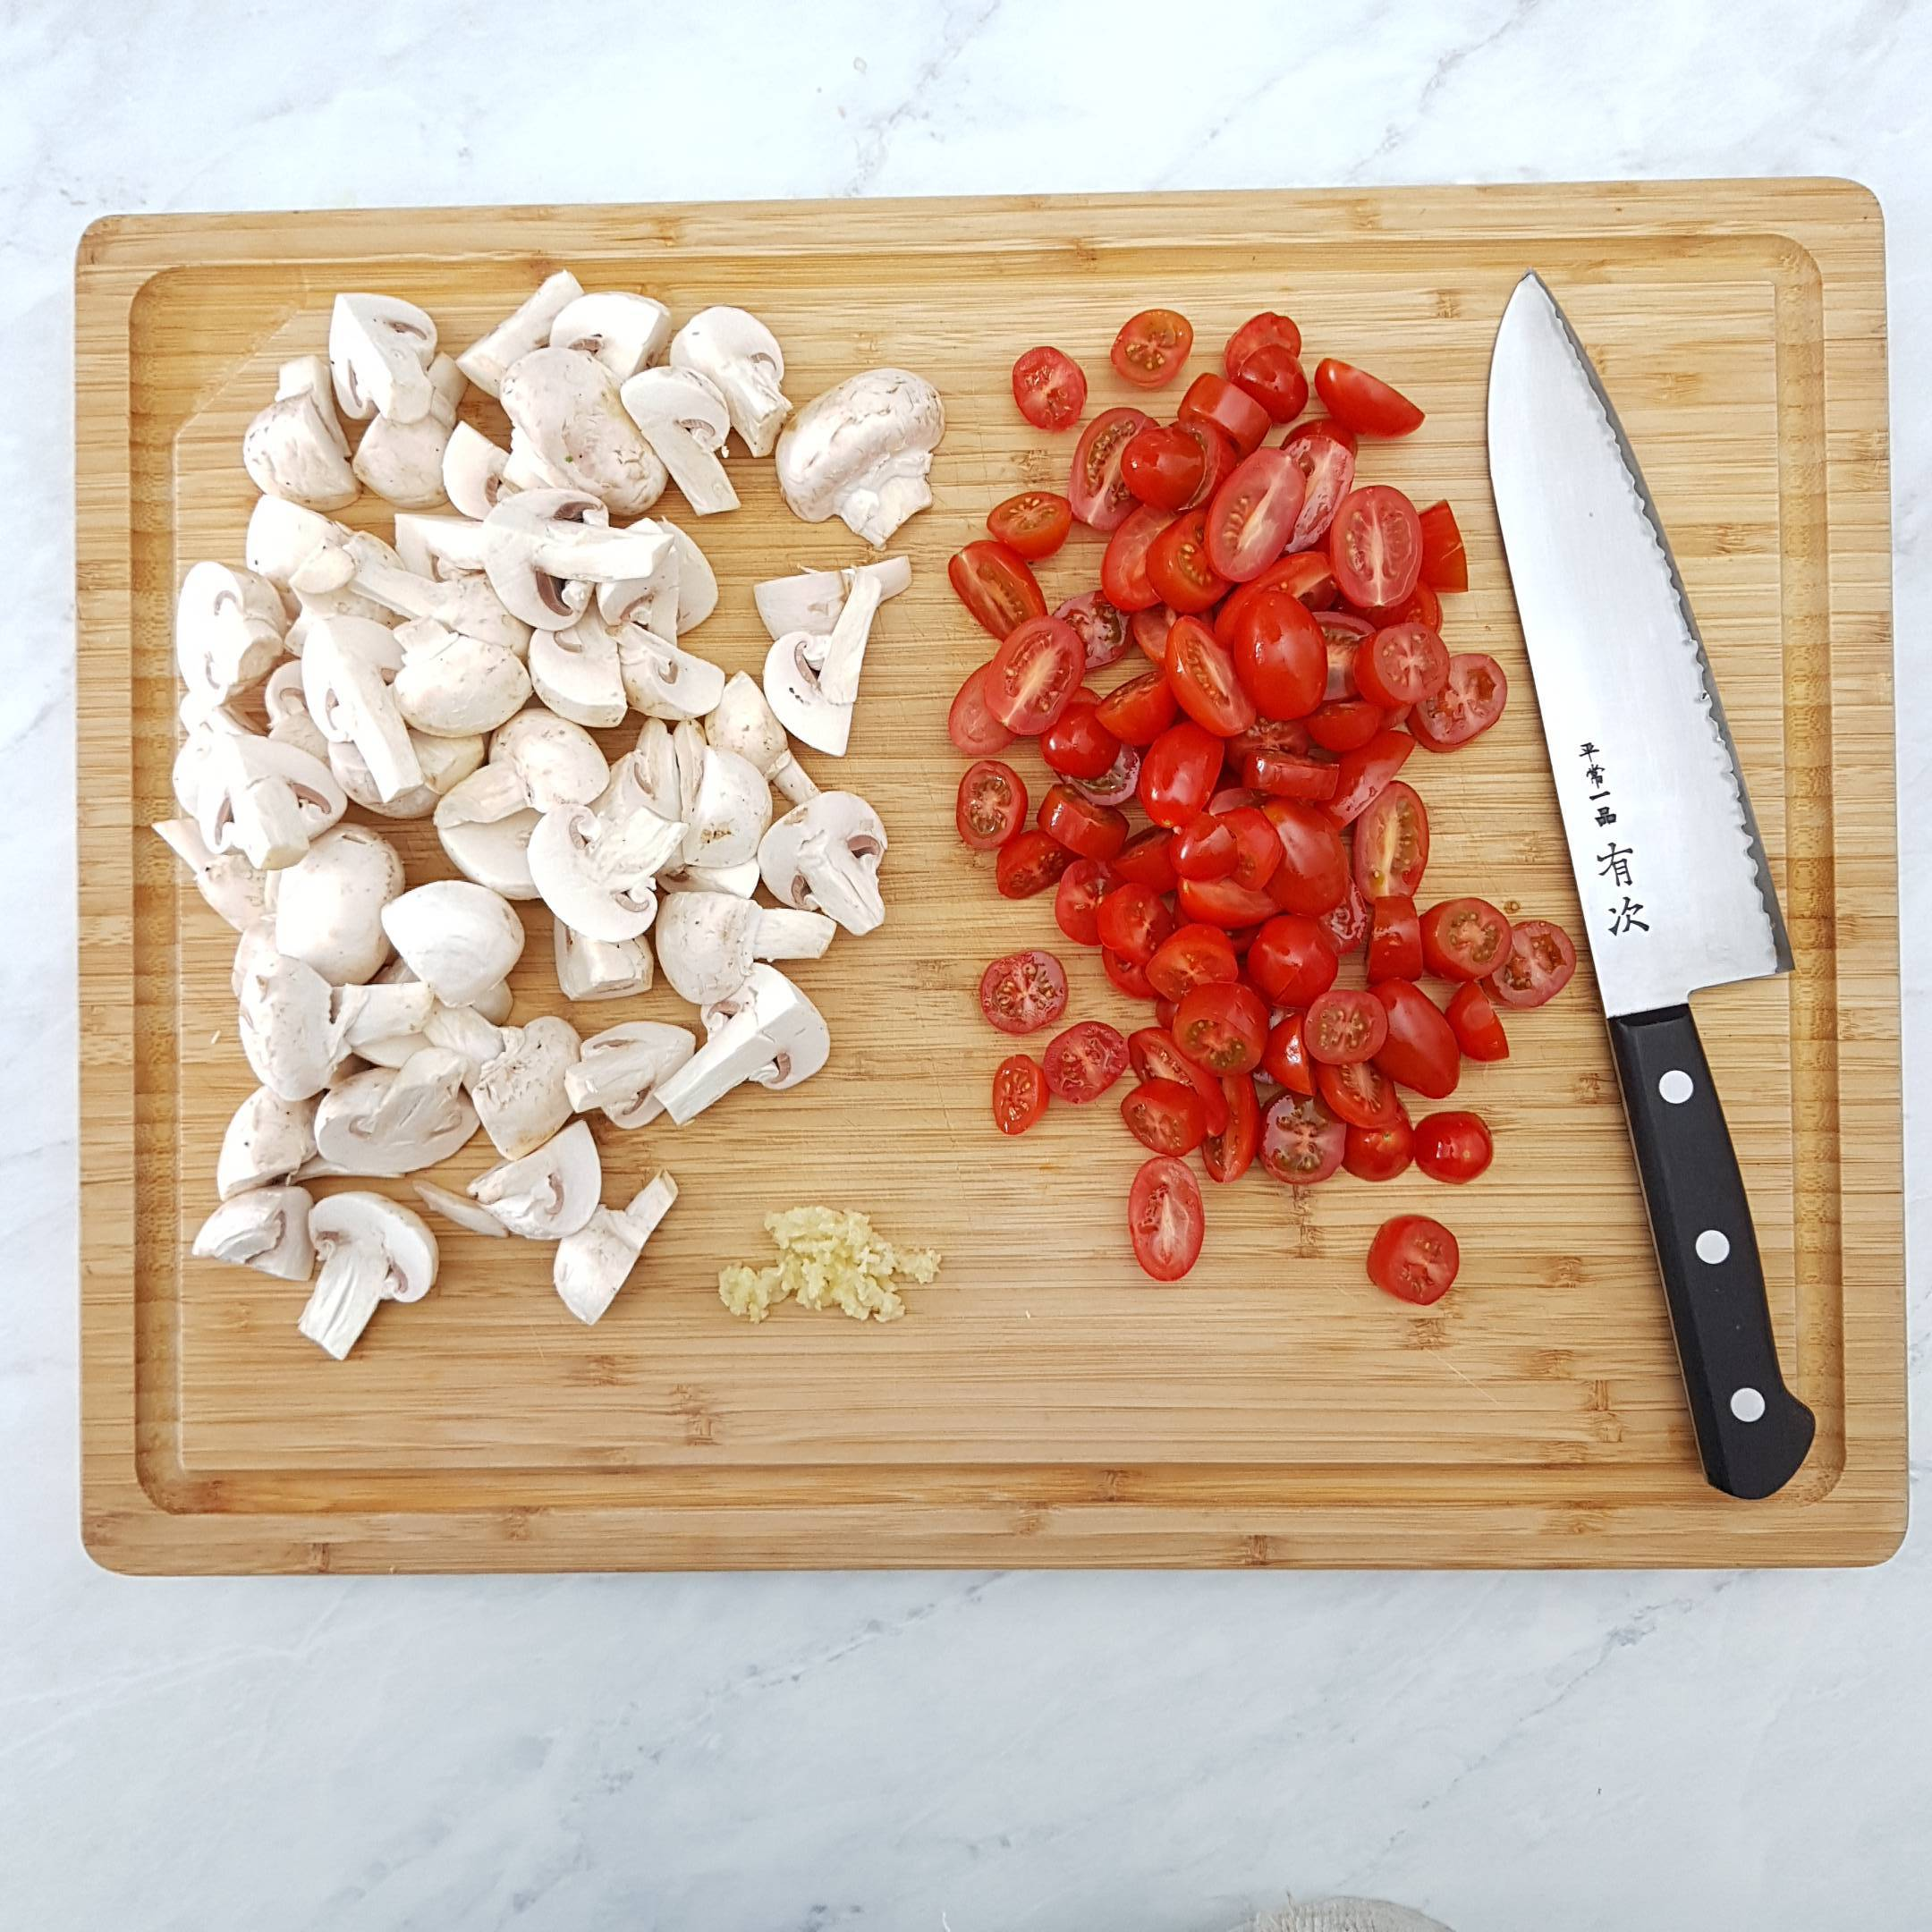 Prepare the vegetables. Chop the mushrooms in to equal sized pieces and roughly chop the tomatoes. Mince two cloves garlic.